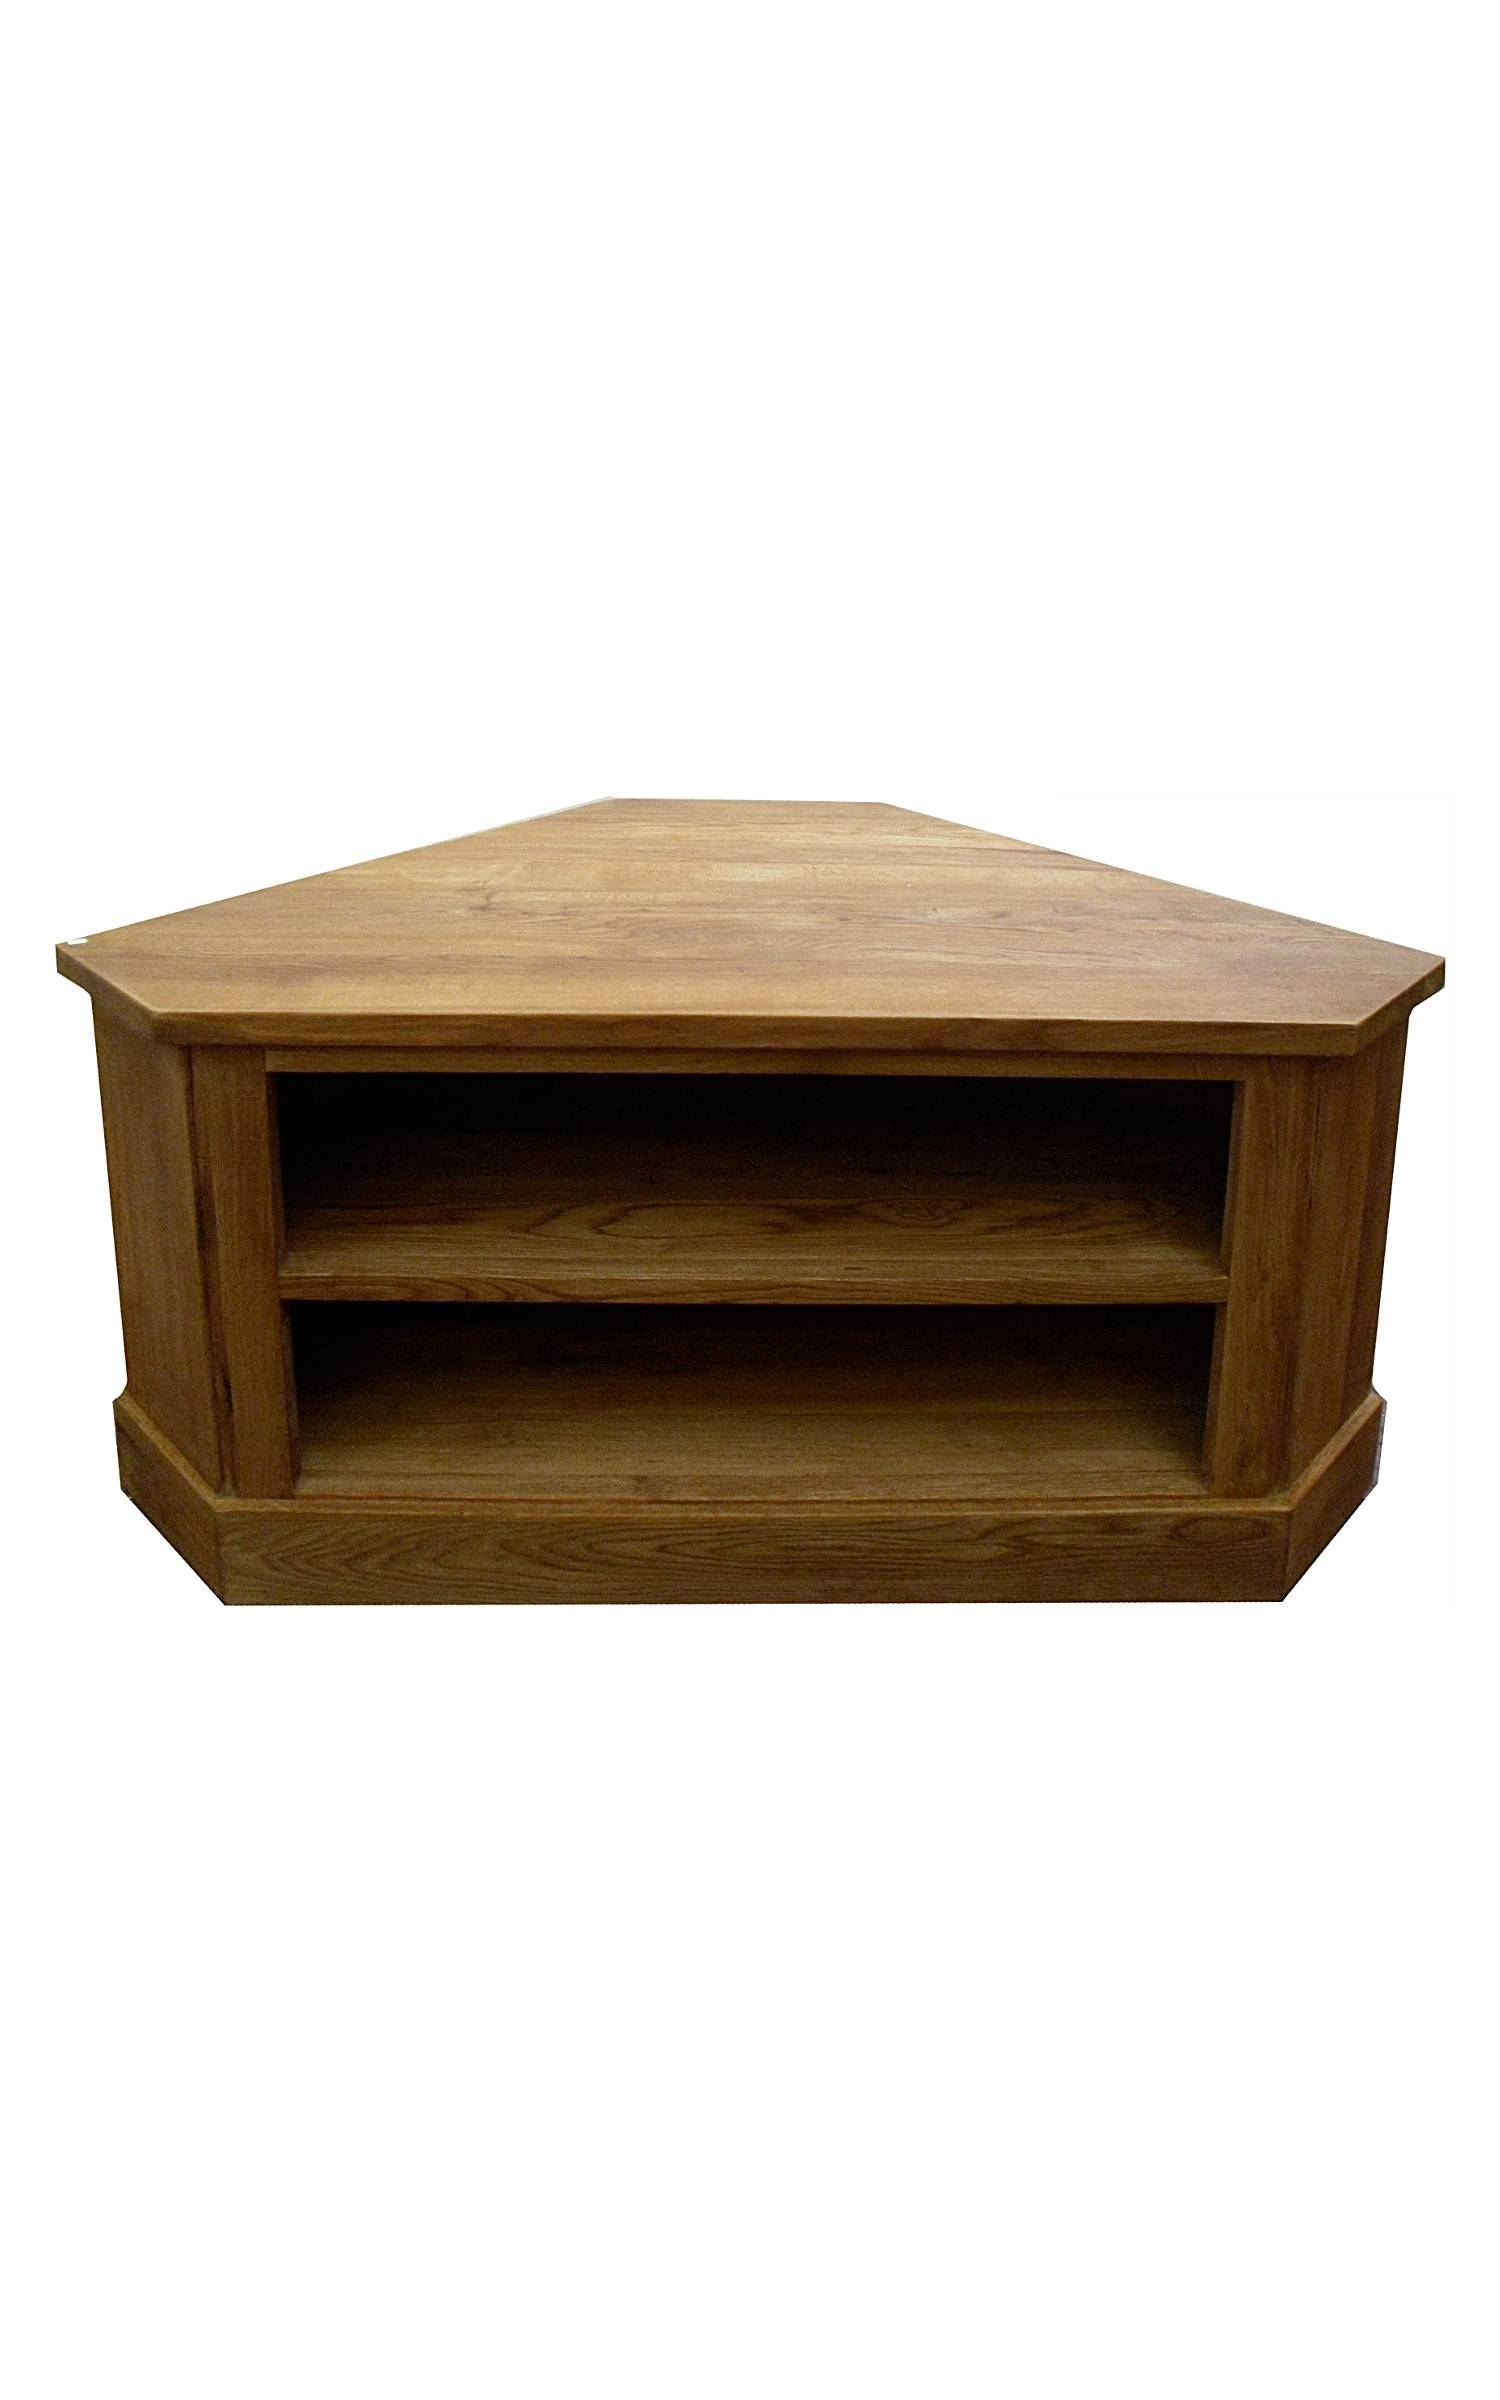 Small Tv Stand At Com Swanky With Oak Corner Stands Exciting Oiled Pertaining To Small Oak Corner Tv Stands (View 8 of 15)